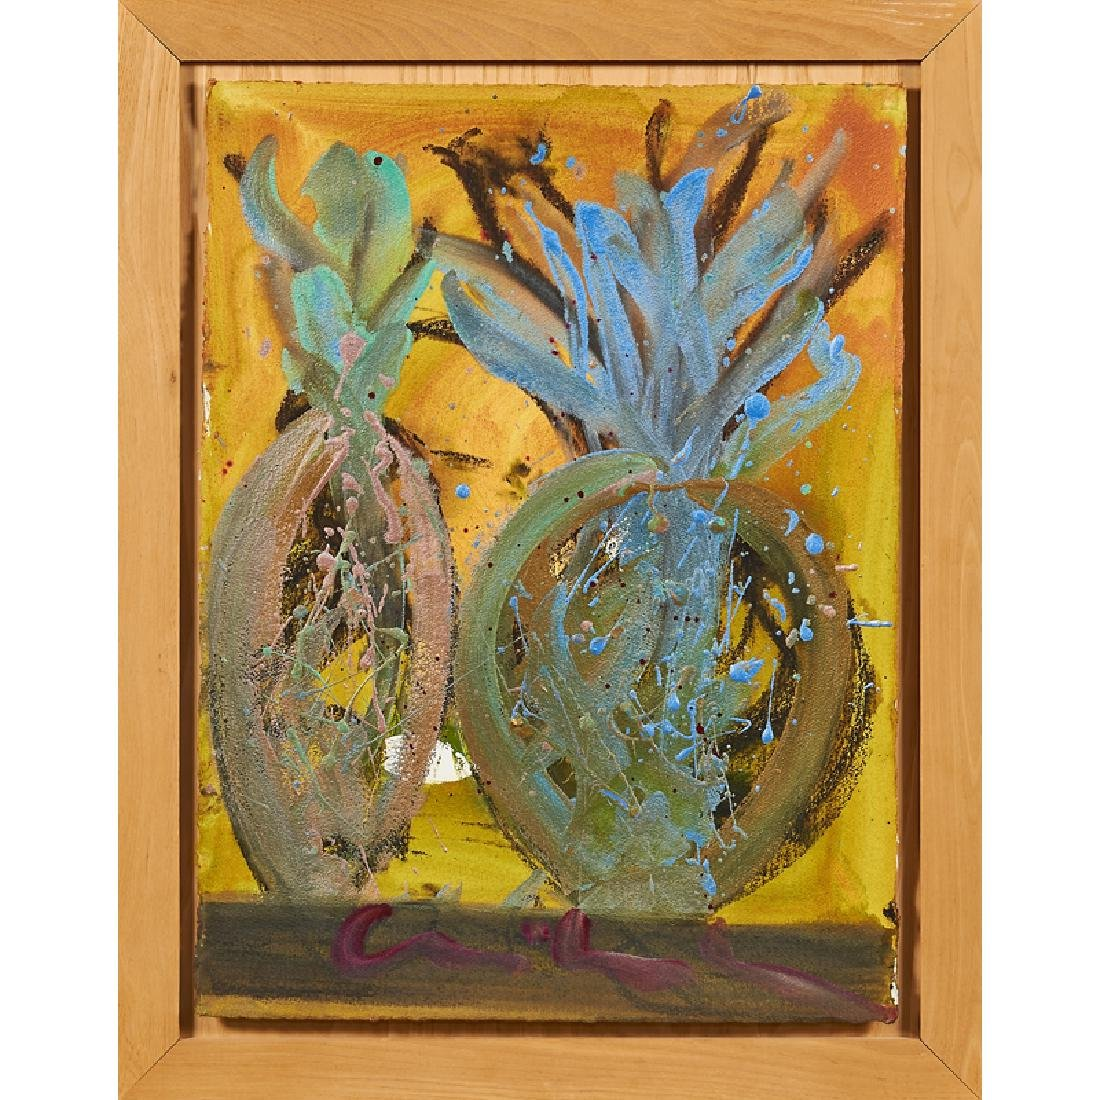 DALE CHIHULY Untitled painting